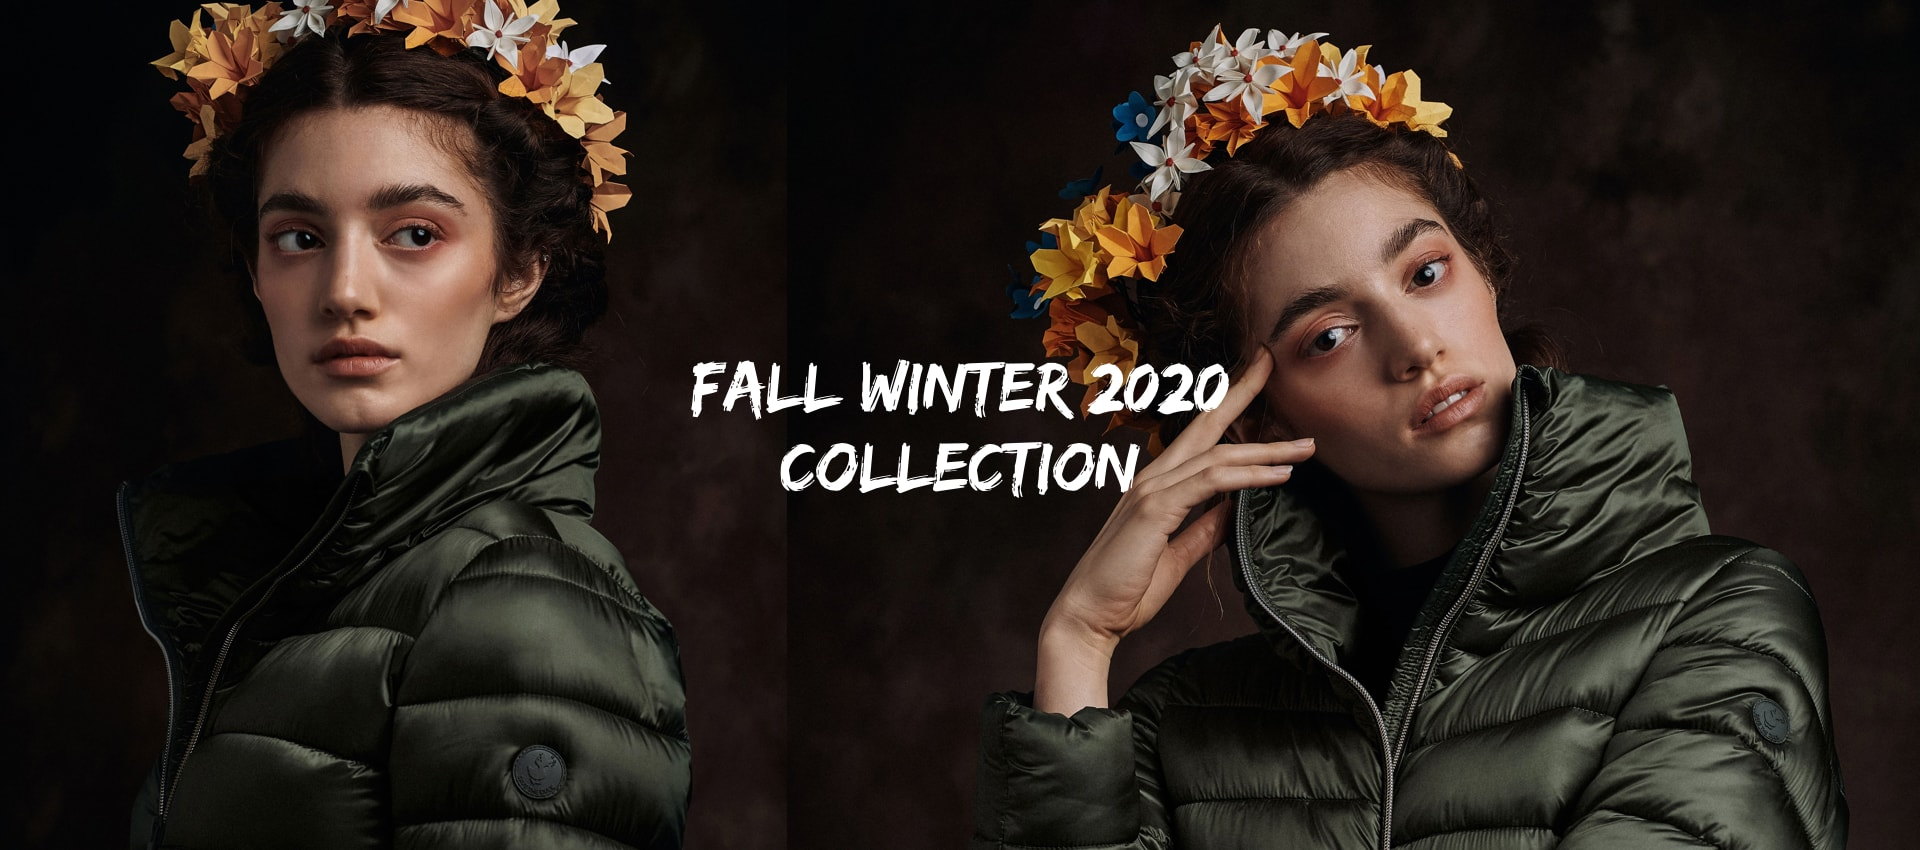 Fall Winter 2020 Collection - Save The Duck